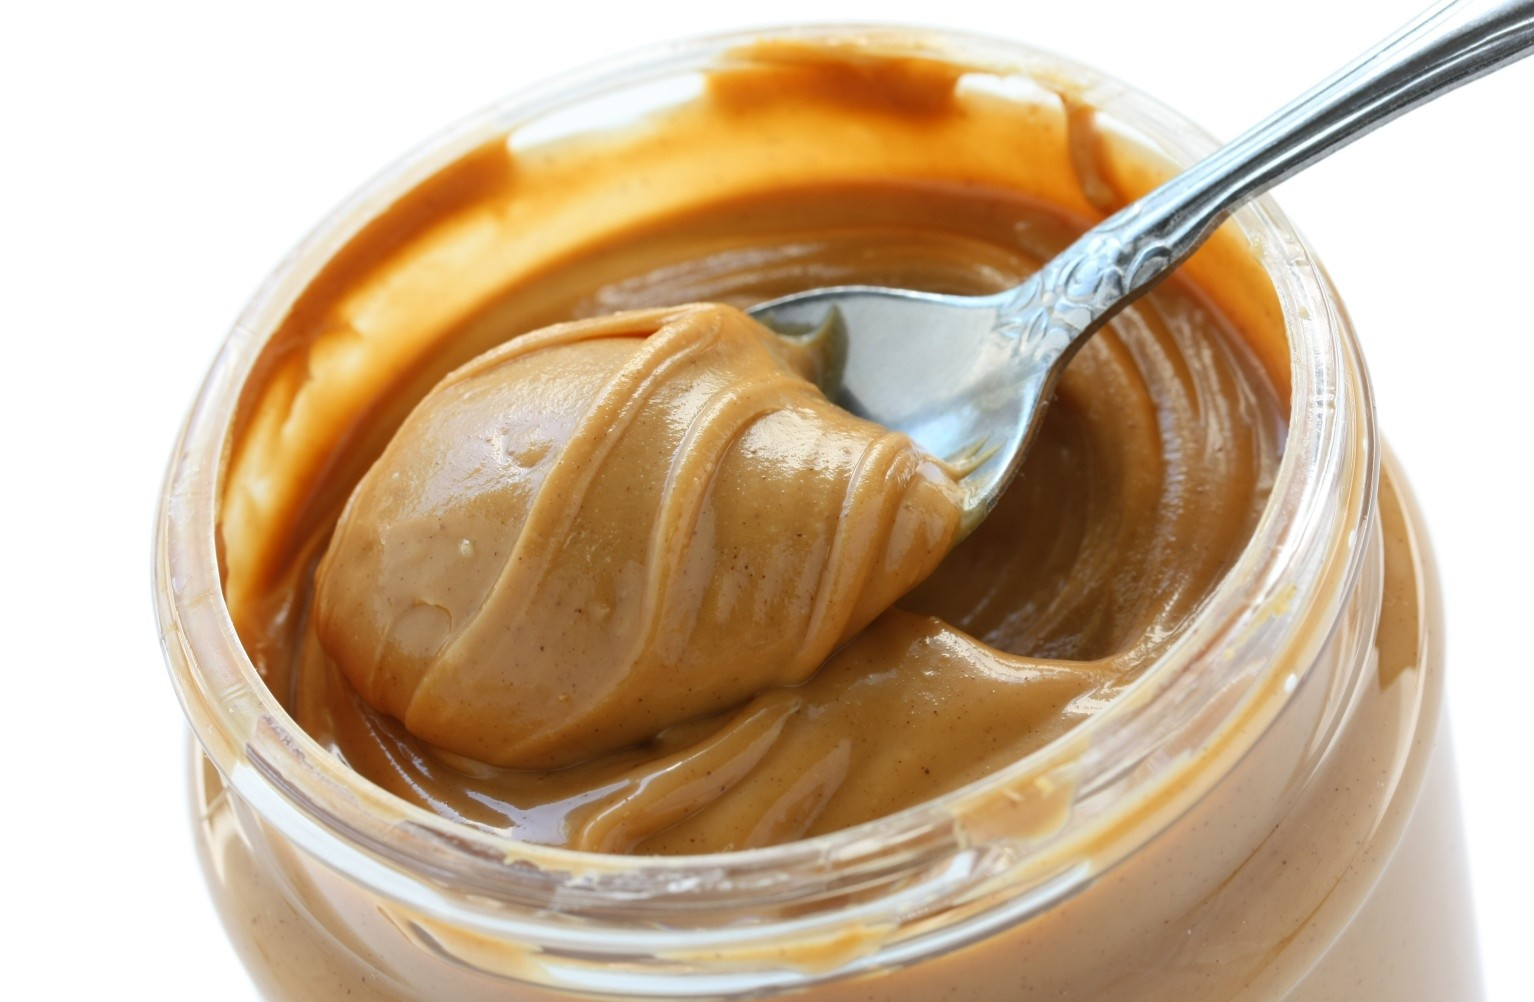 A Peanut Butter Scoop Reglarly Is Good For Runners